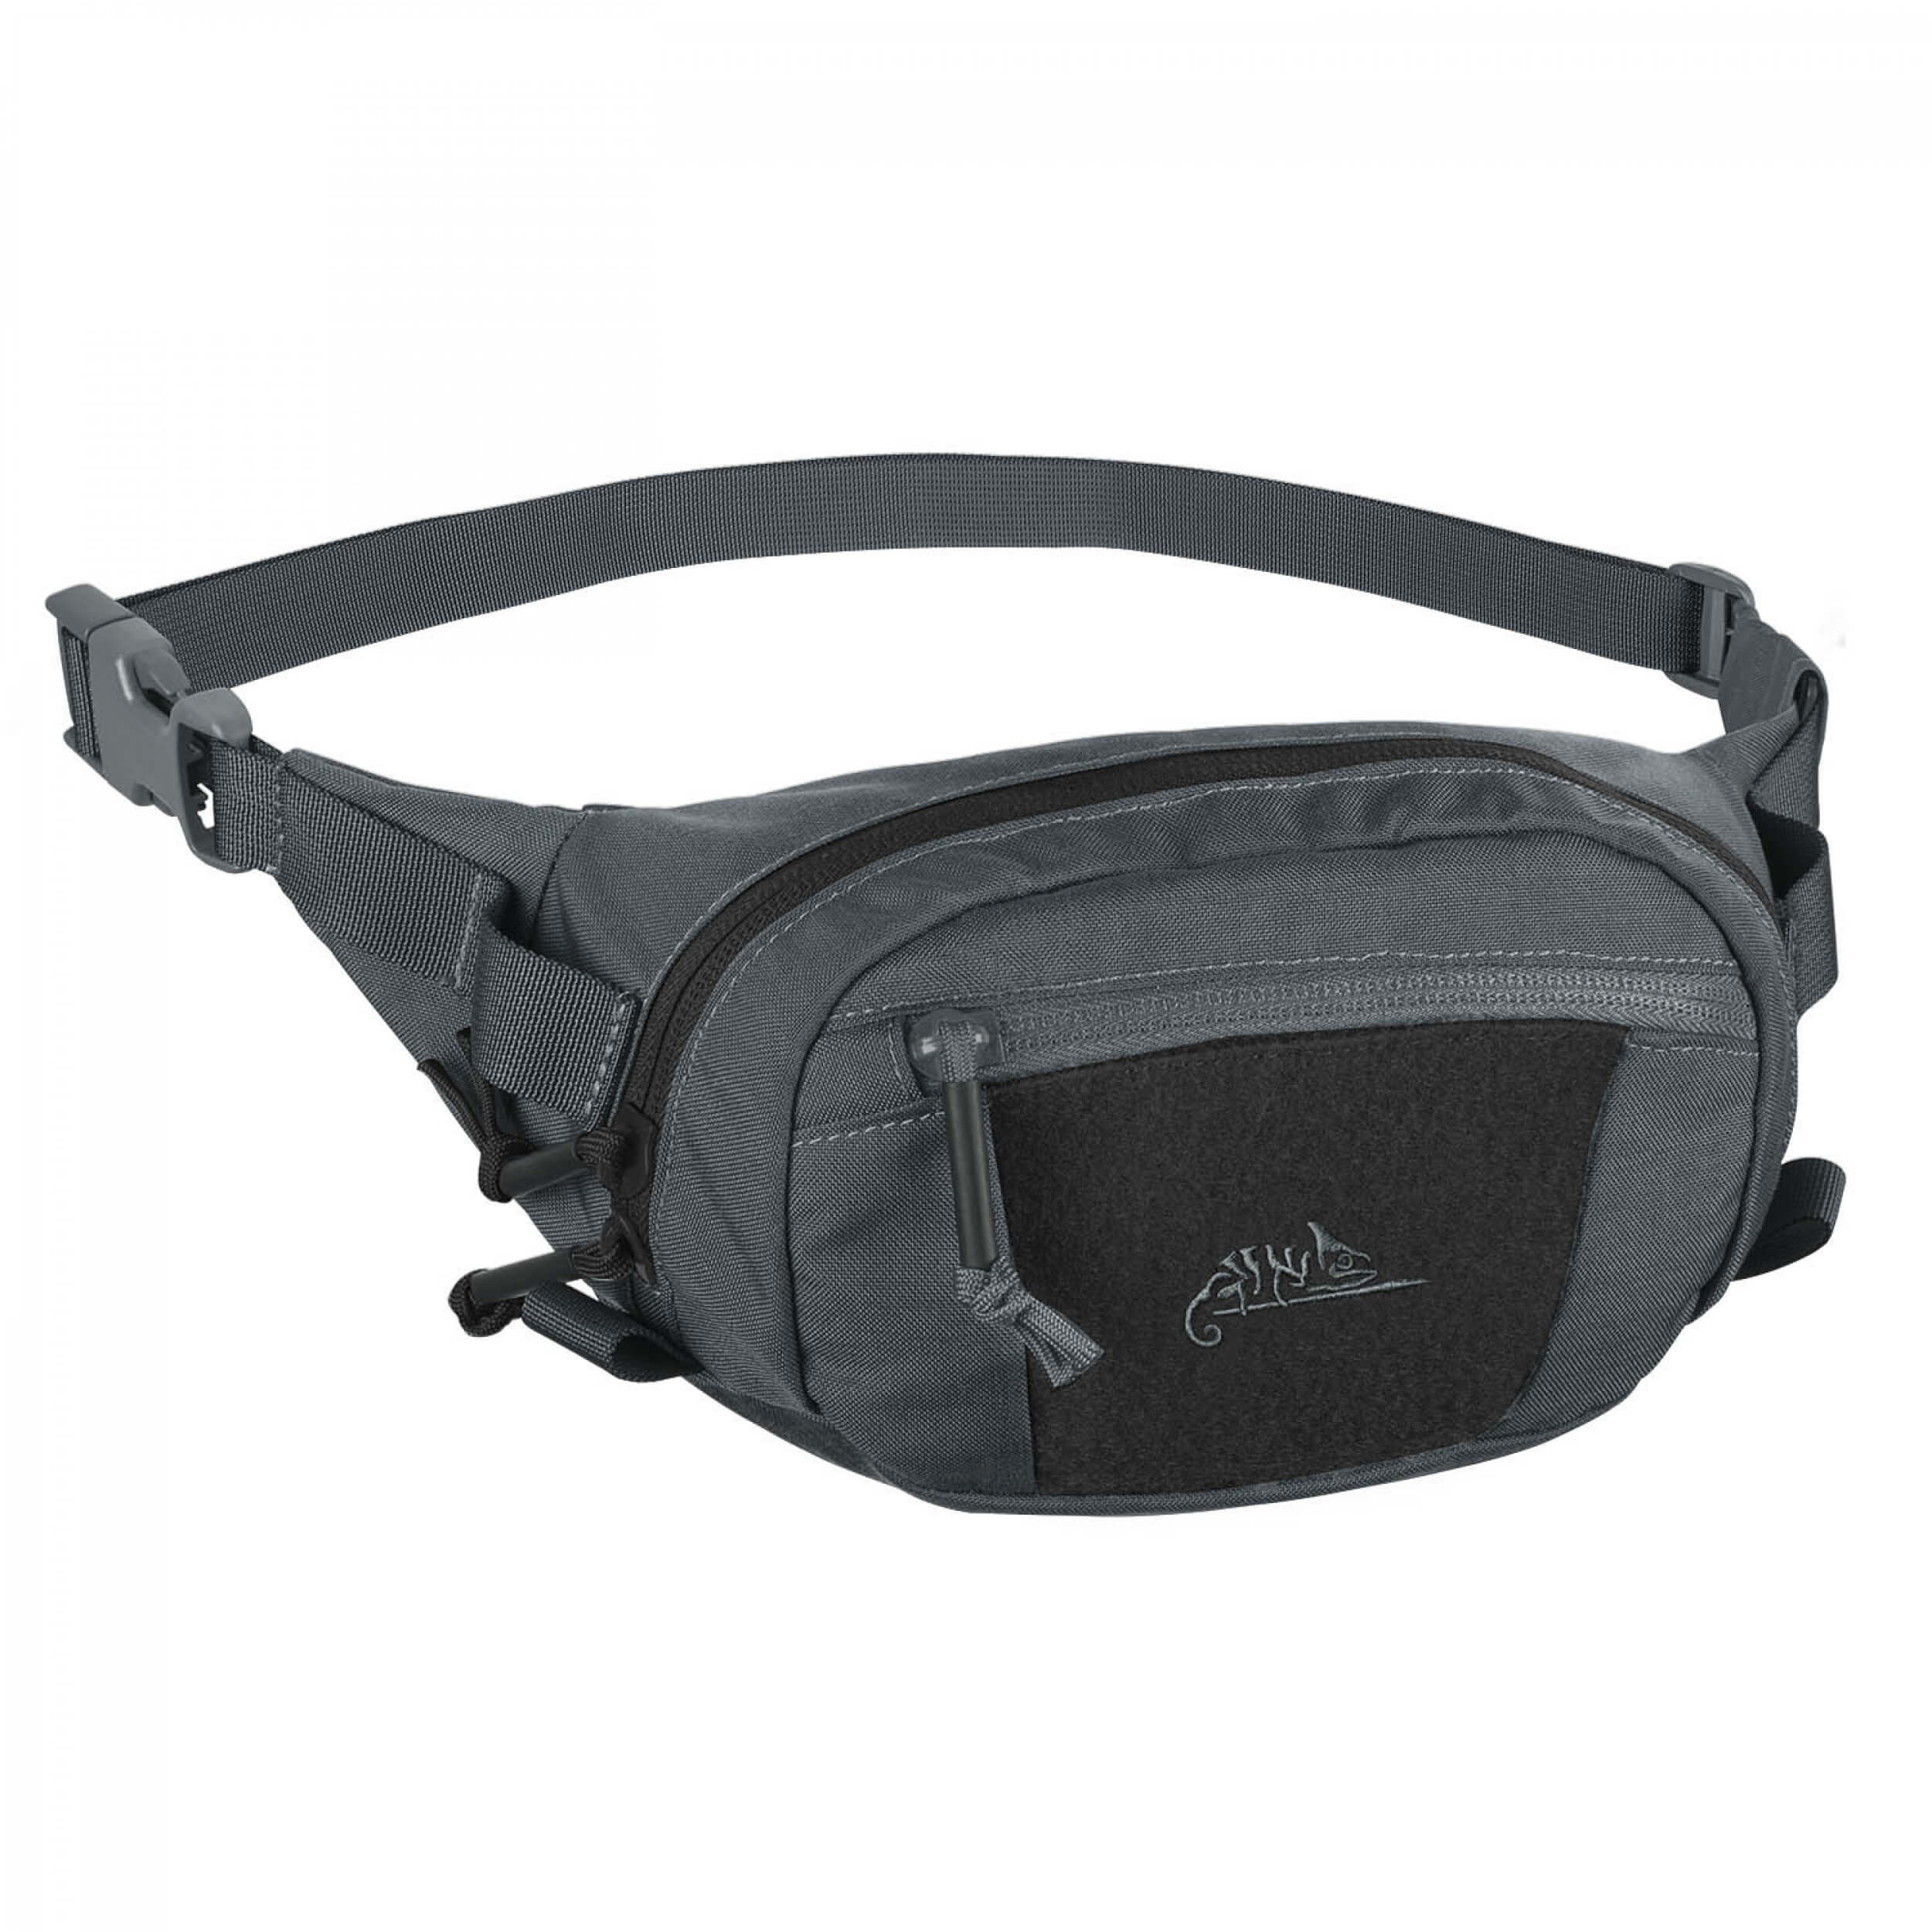 Helikon-Tex Waist Pack Possum Shadow Grey / Black B